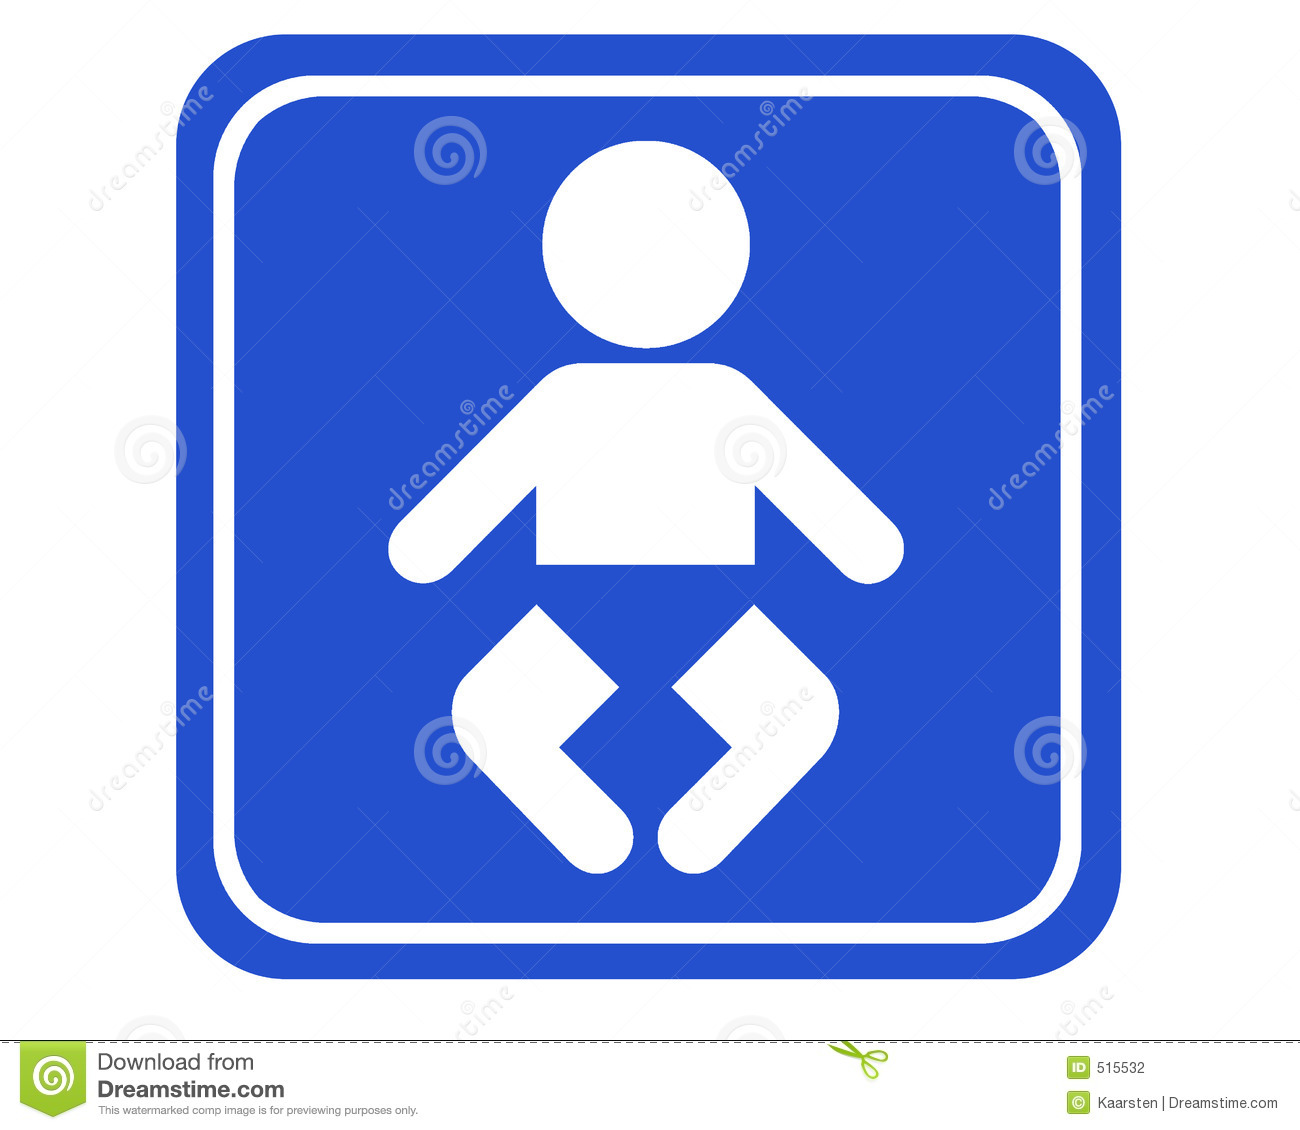 Onions Slices Clipart Baby changing area cli...